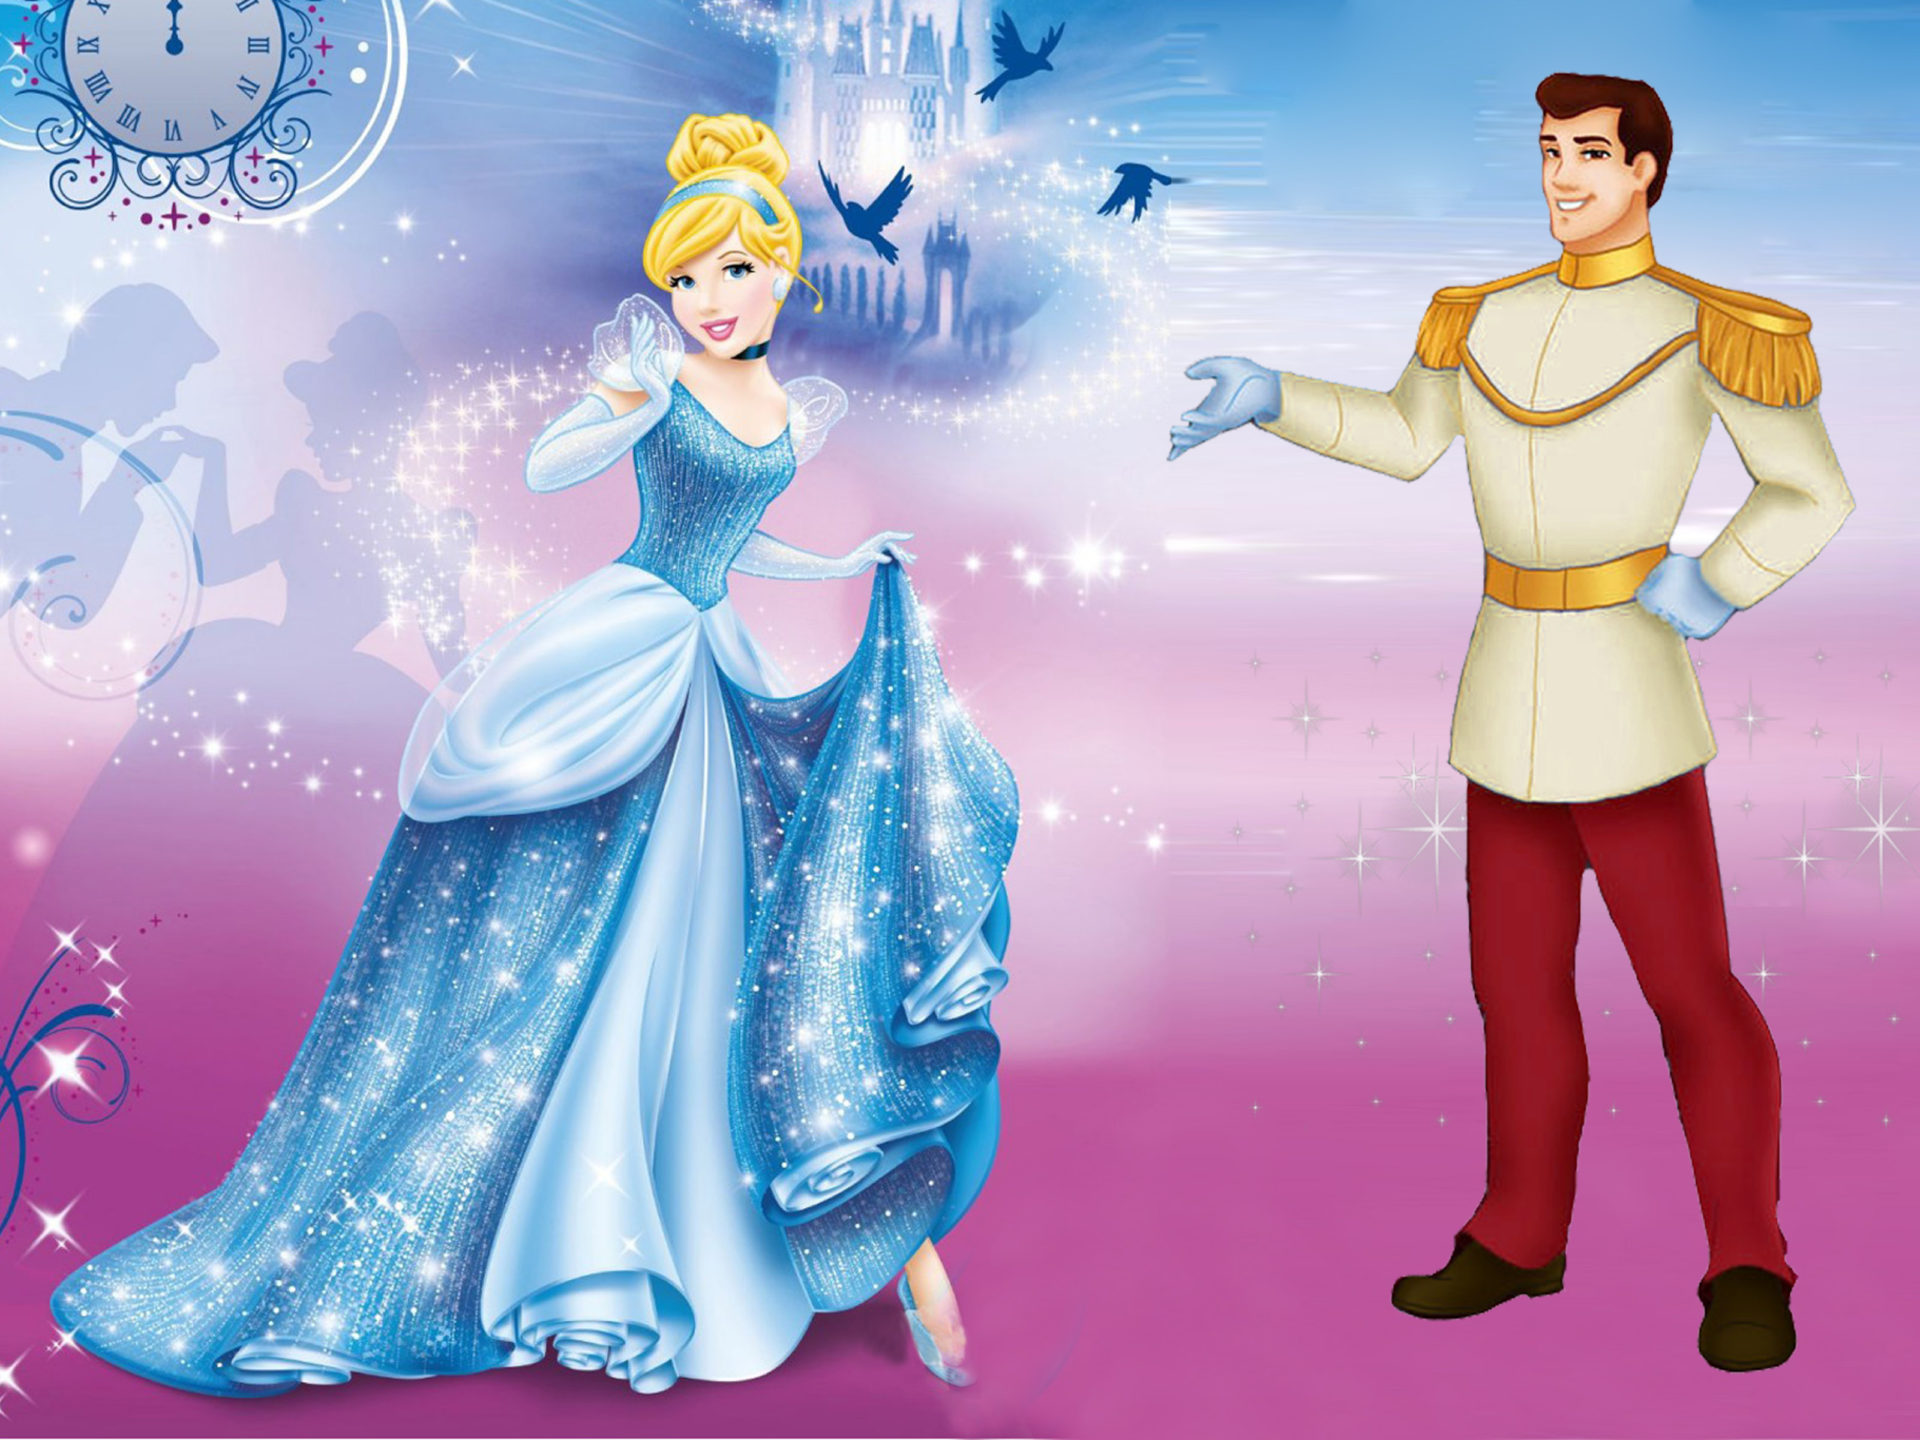 Wallpaper Desktop 1366x768 Car Disney Princess Cinderella And Prince Charming Desktop